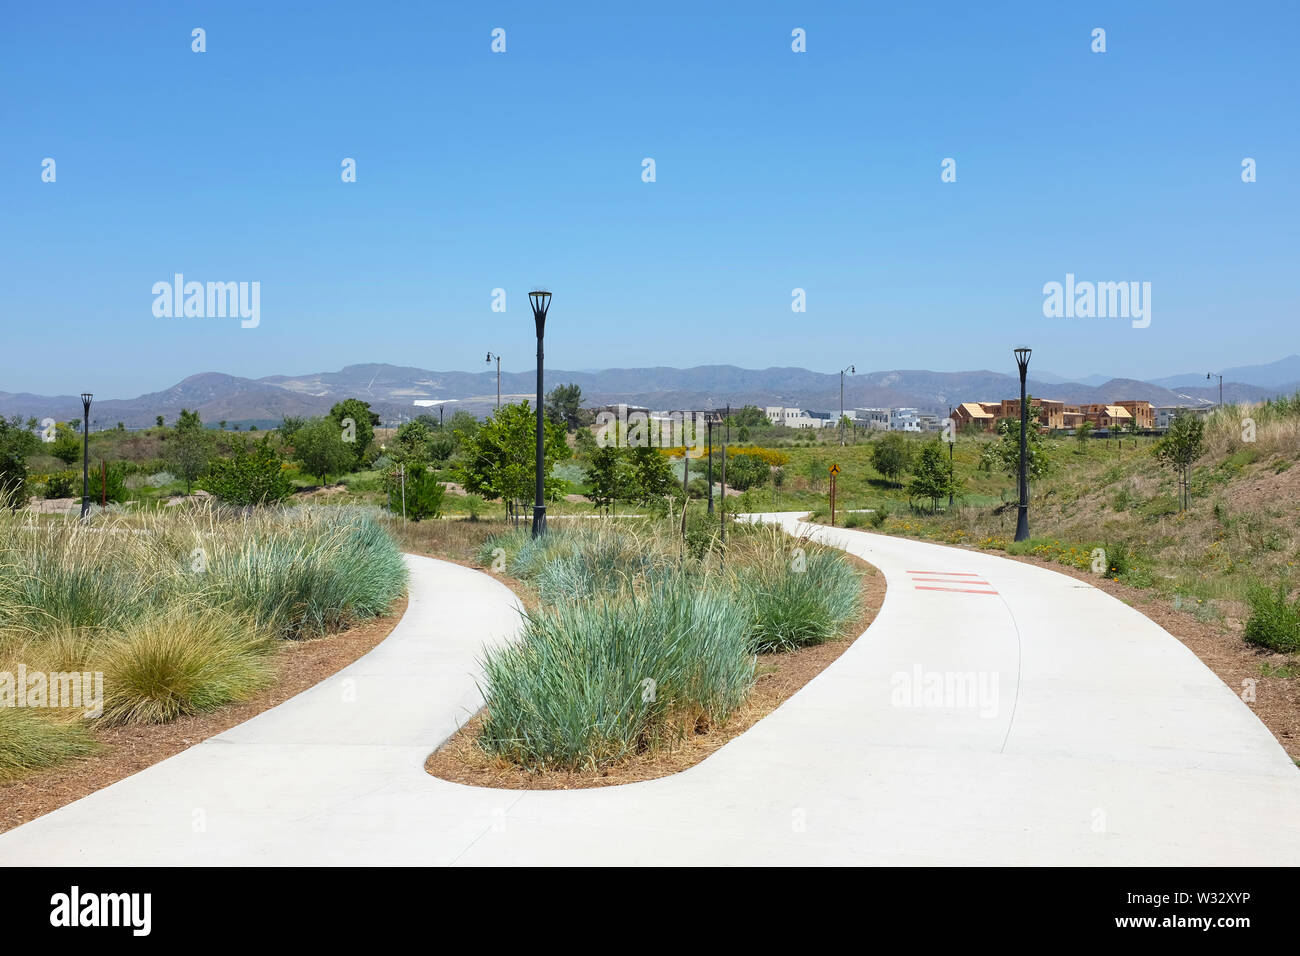 IRIVNE, CALIFORNIA - JULY 11, 2019: Fork in the road in the Great Park Bosque Area, a 53 acre open space area with bike and pedestrian trails. - Stock Image